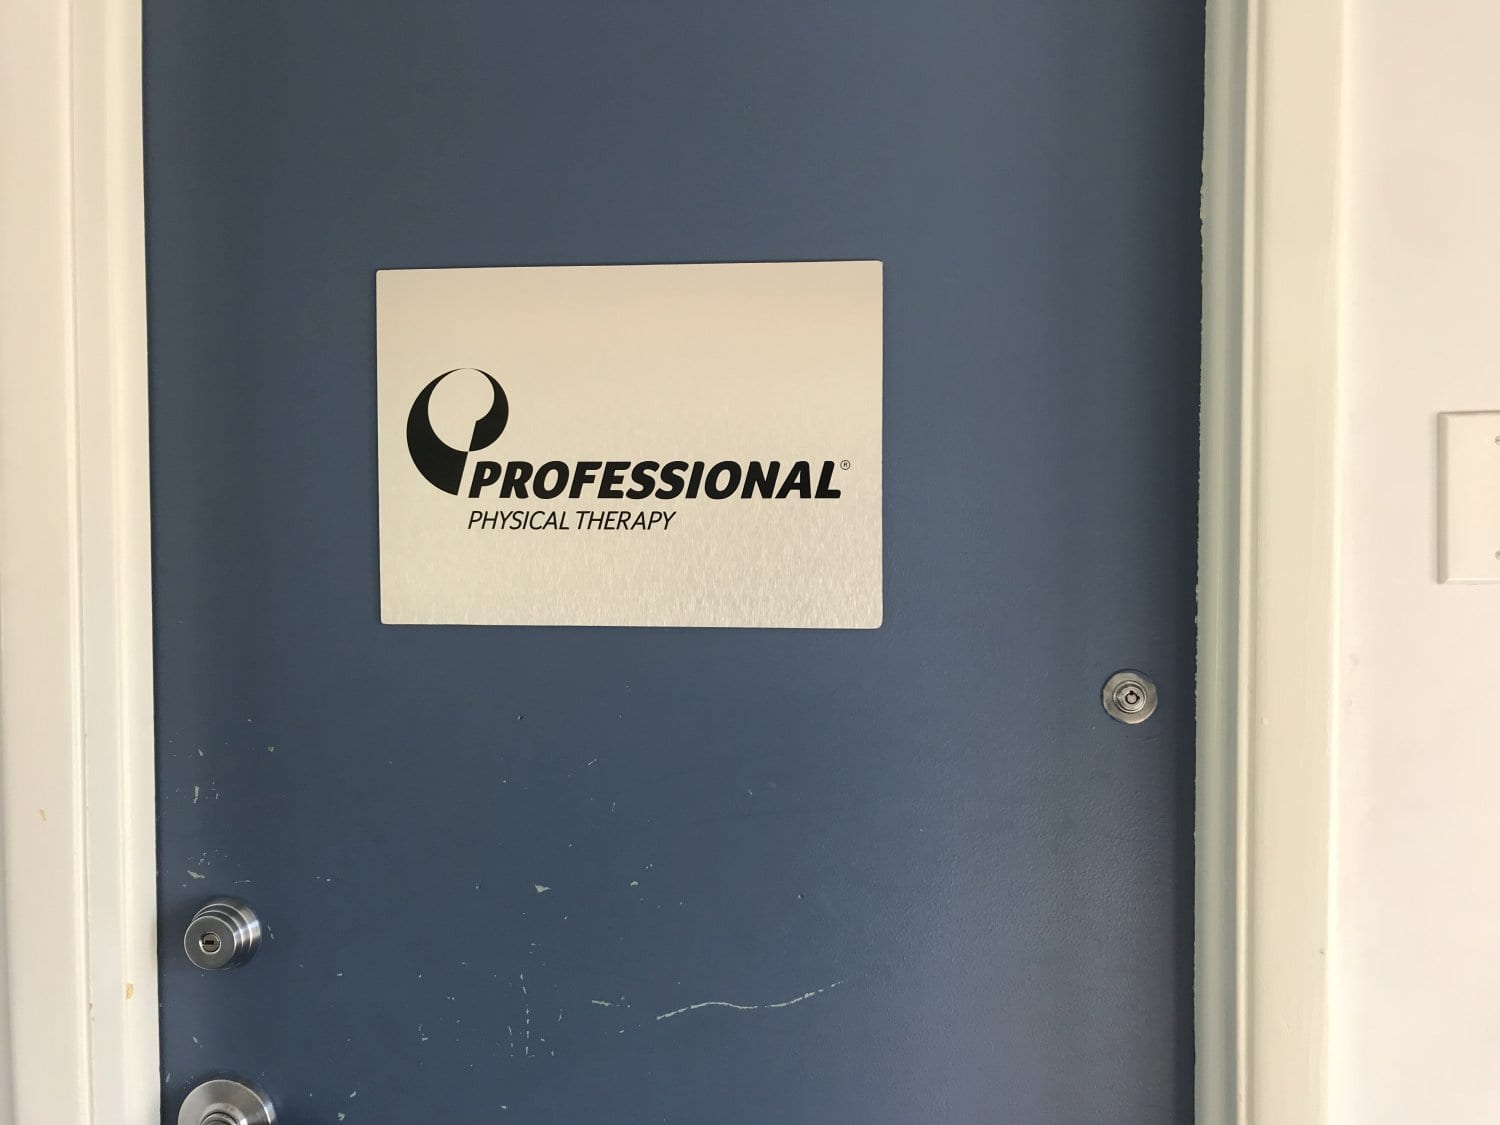 Here is the door to our physical therapy clinic in West Caldwell, New Jersey.